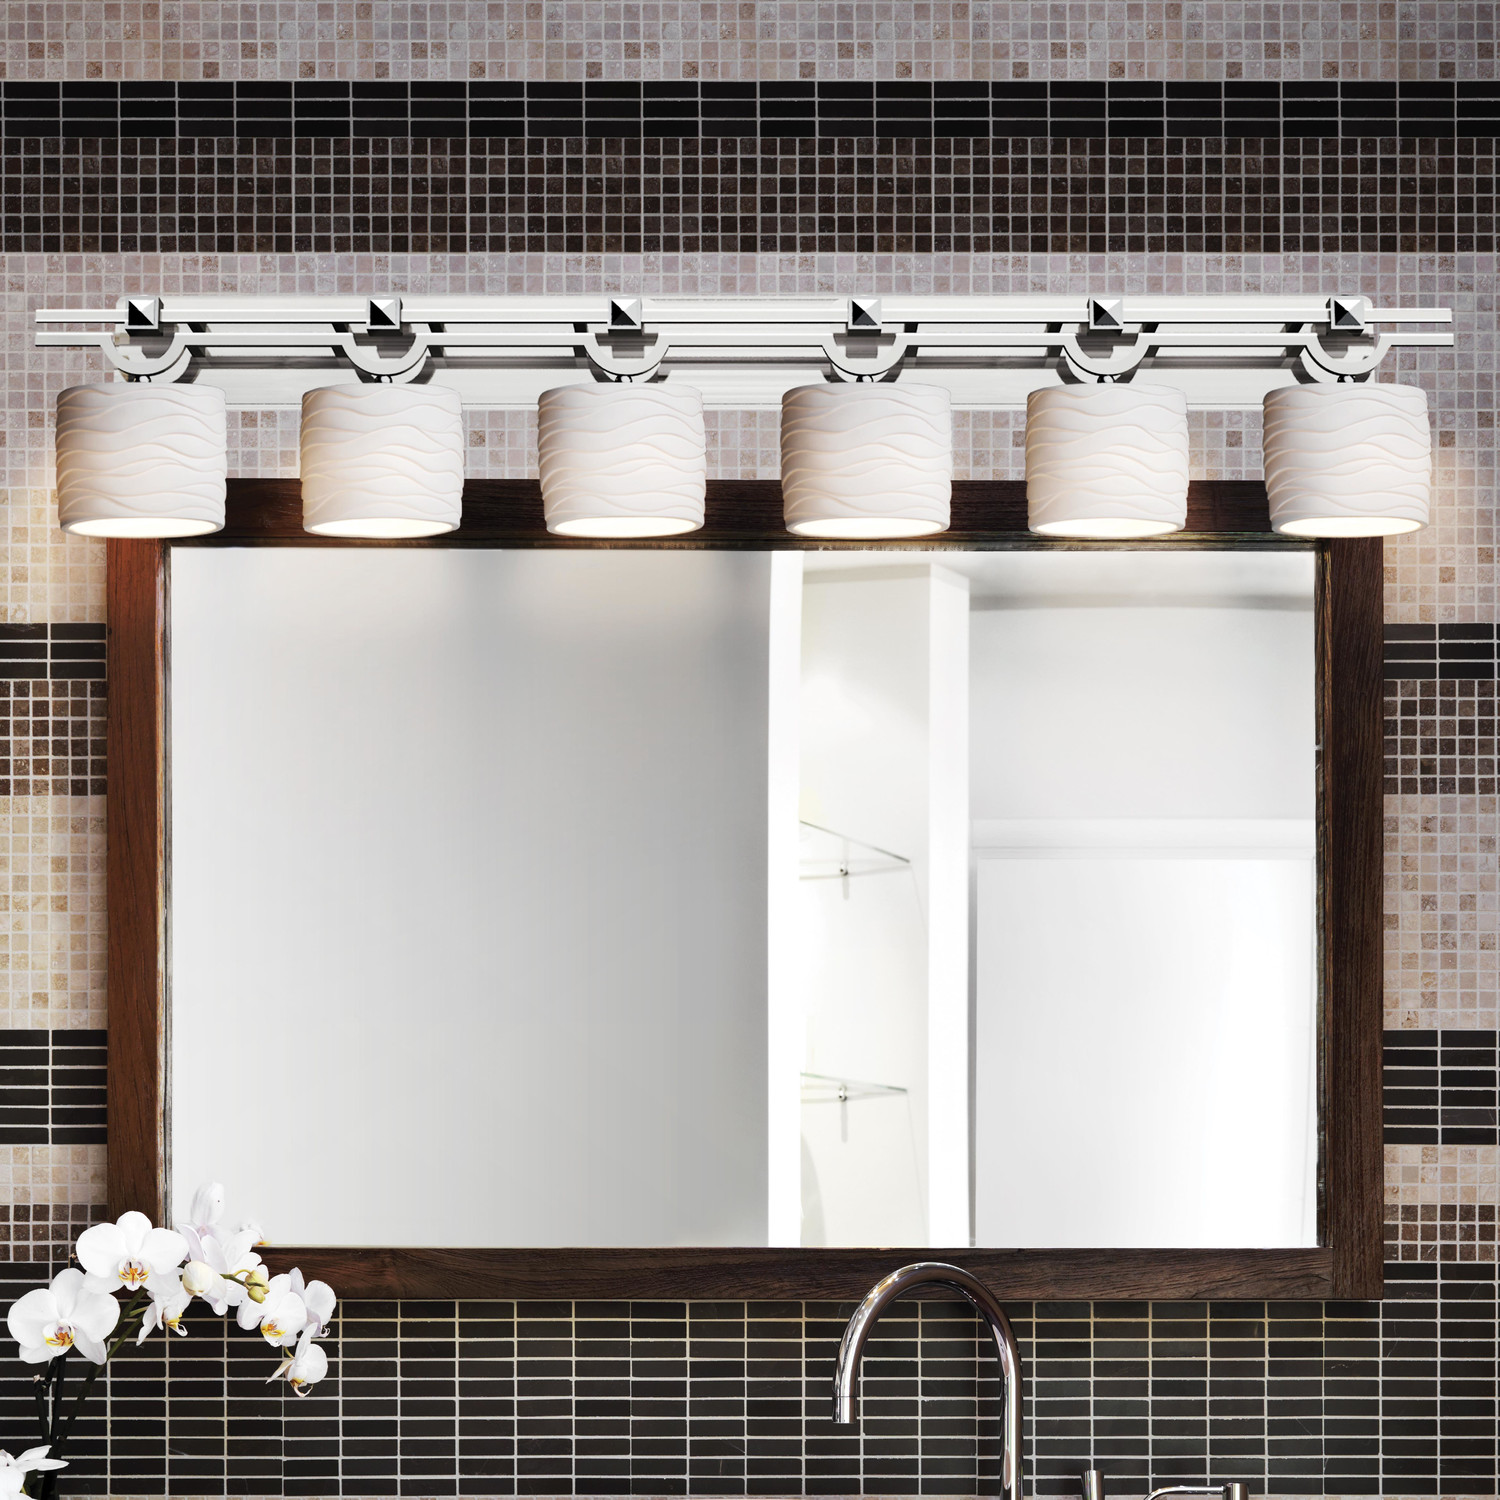 Justice-Design-Group-Limoges-Argyle-Oval-6-Light-Bath-Bar-POR-8506-30